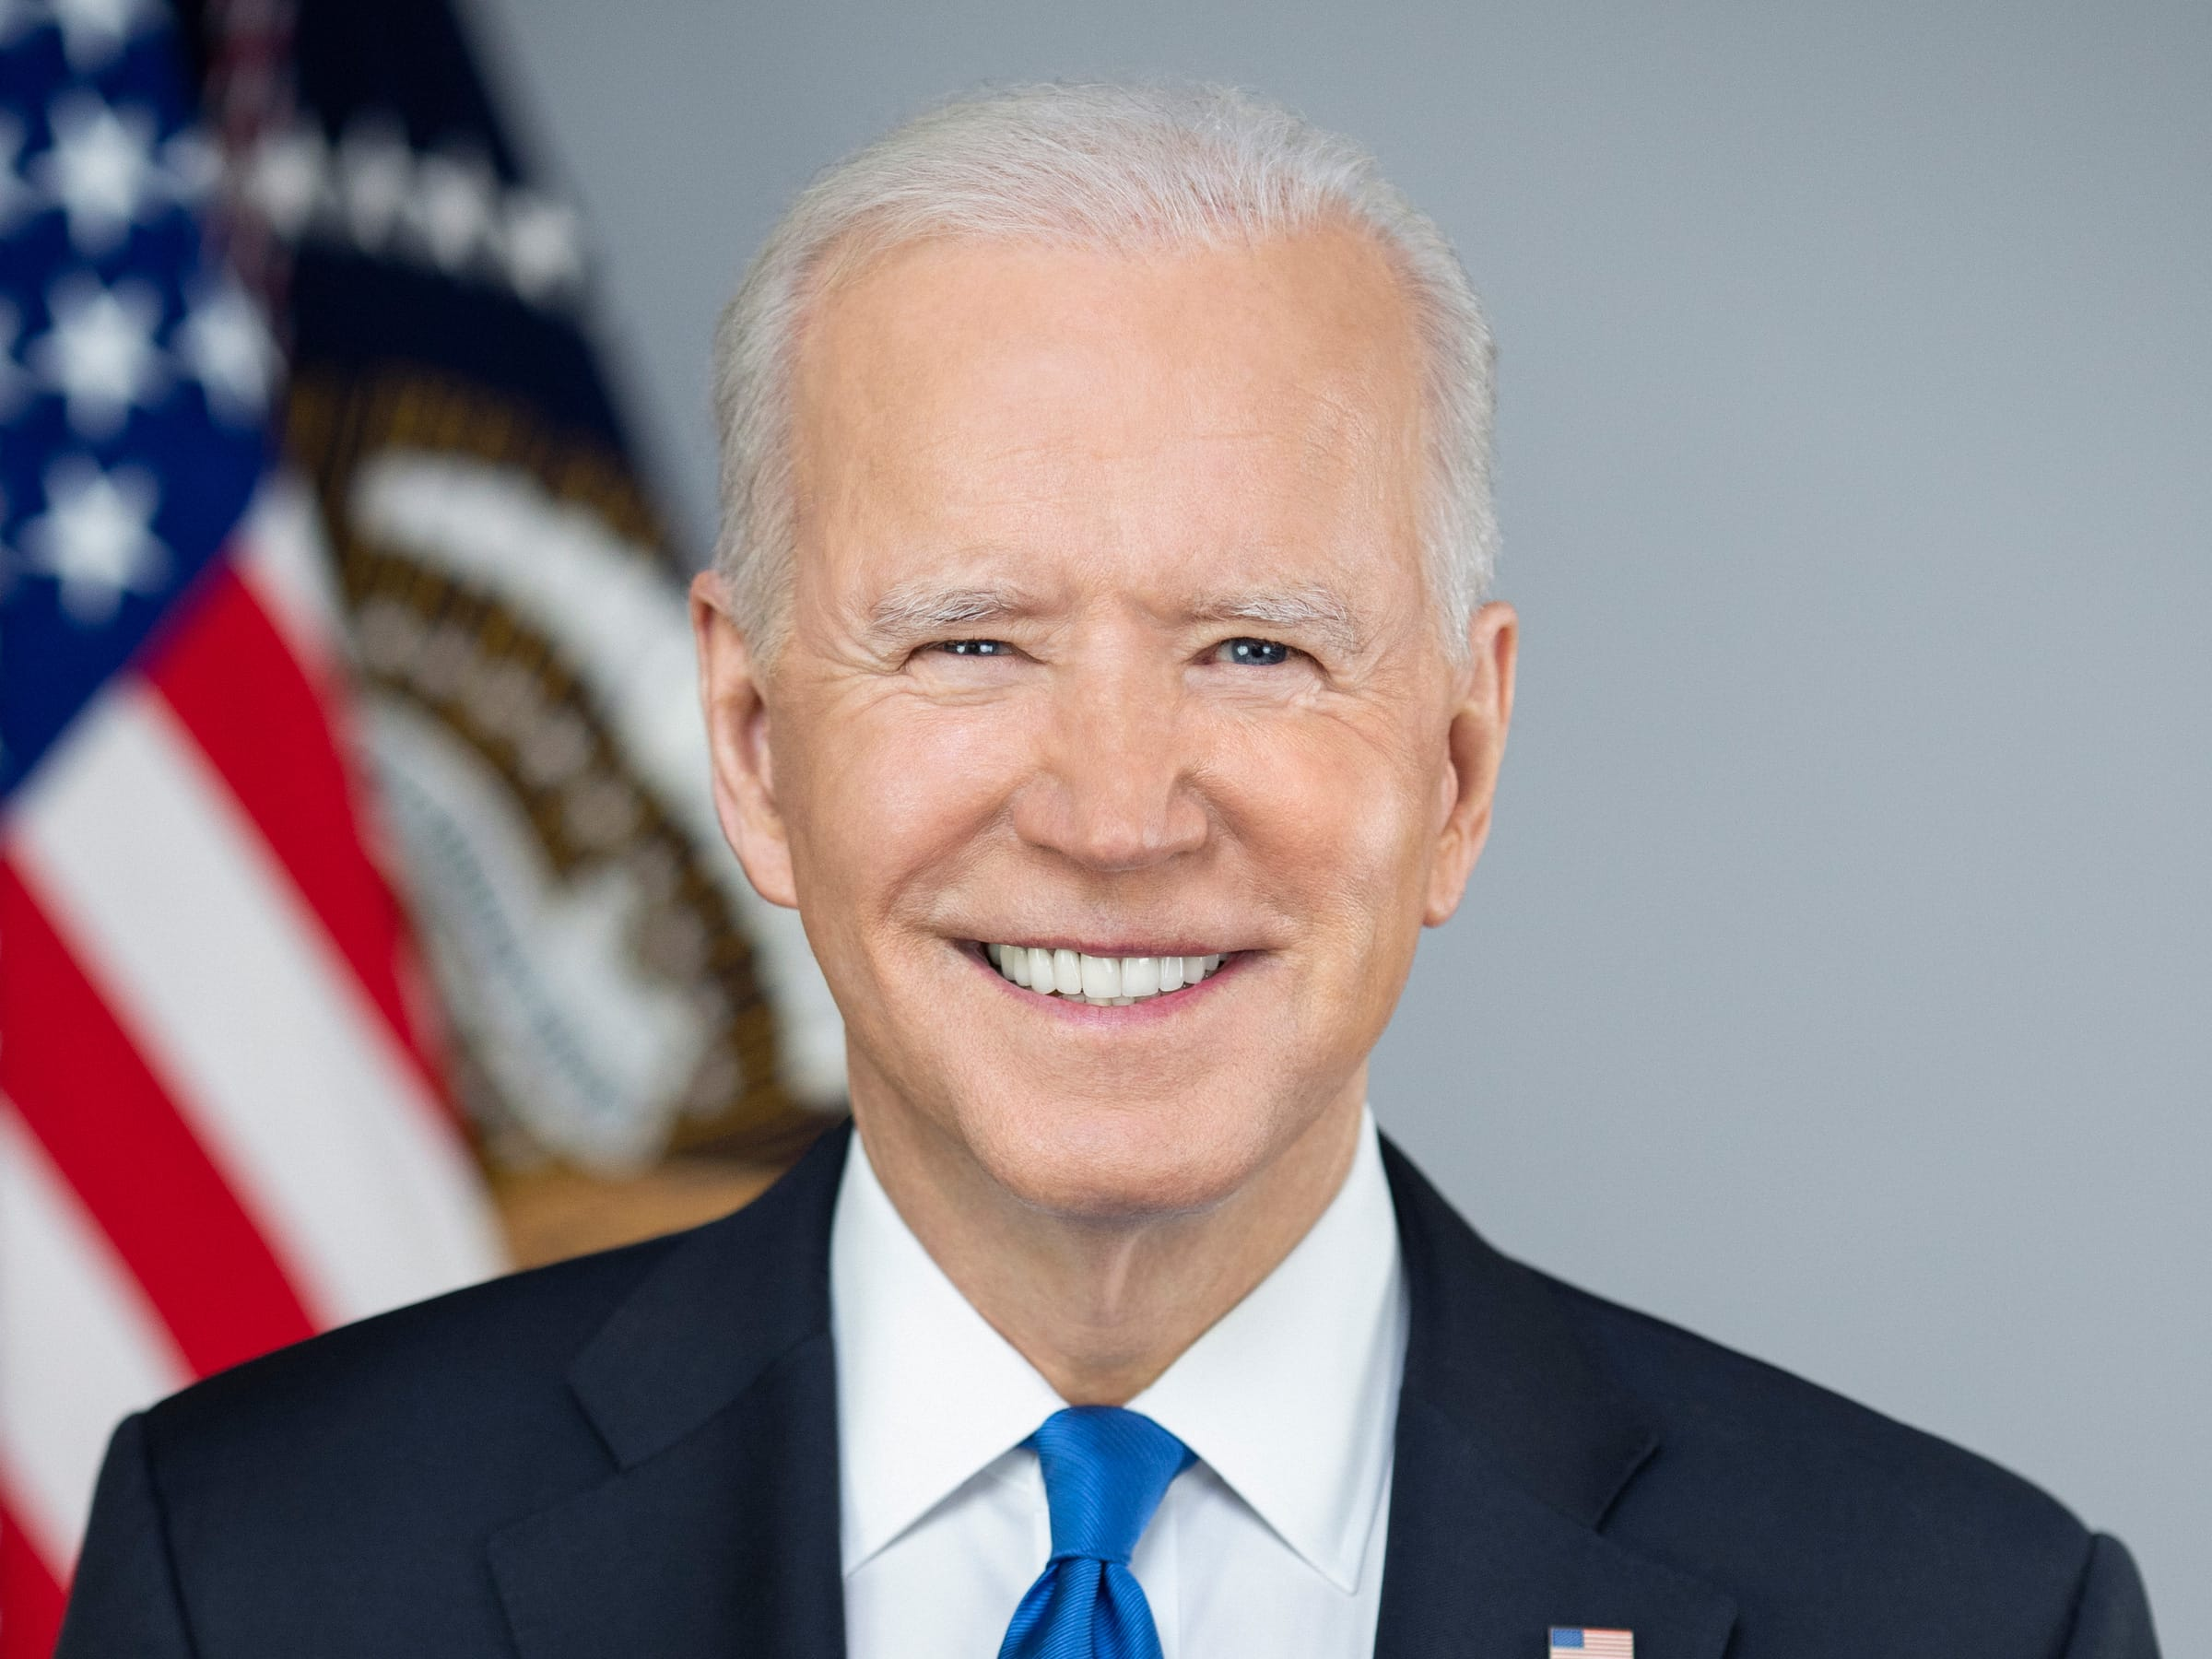 Joe Biden Approval rating: Struggling on Immigration and Economy